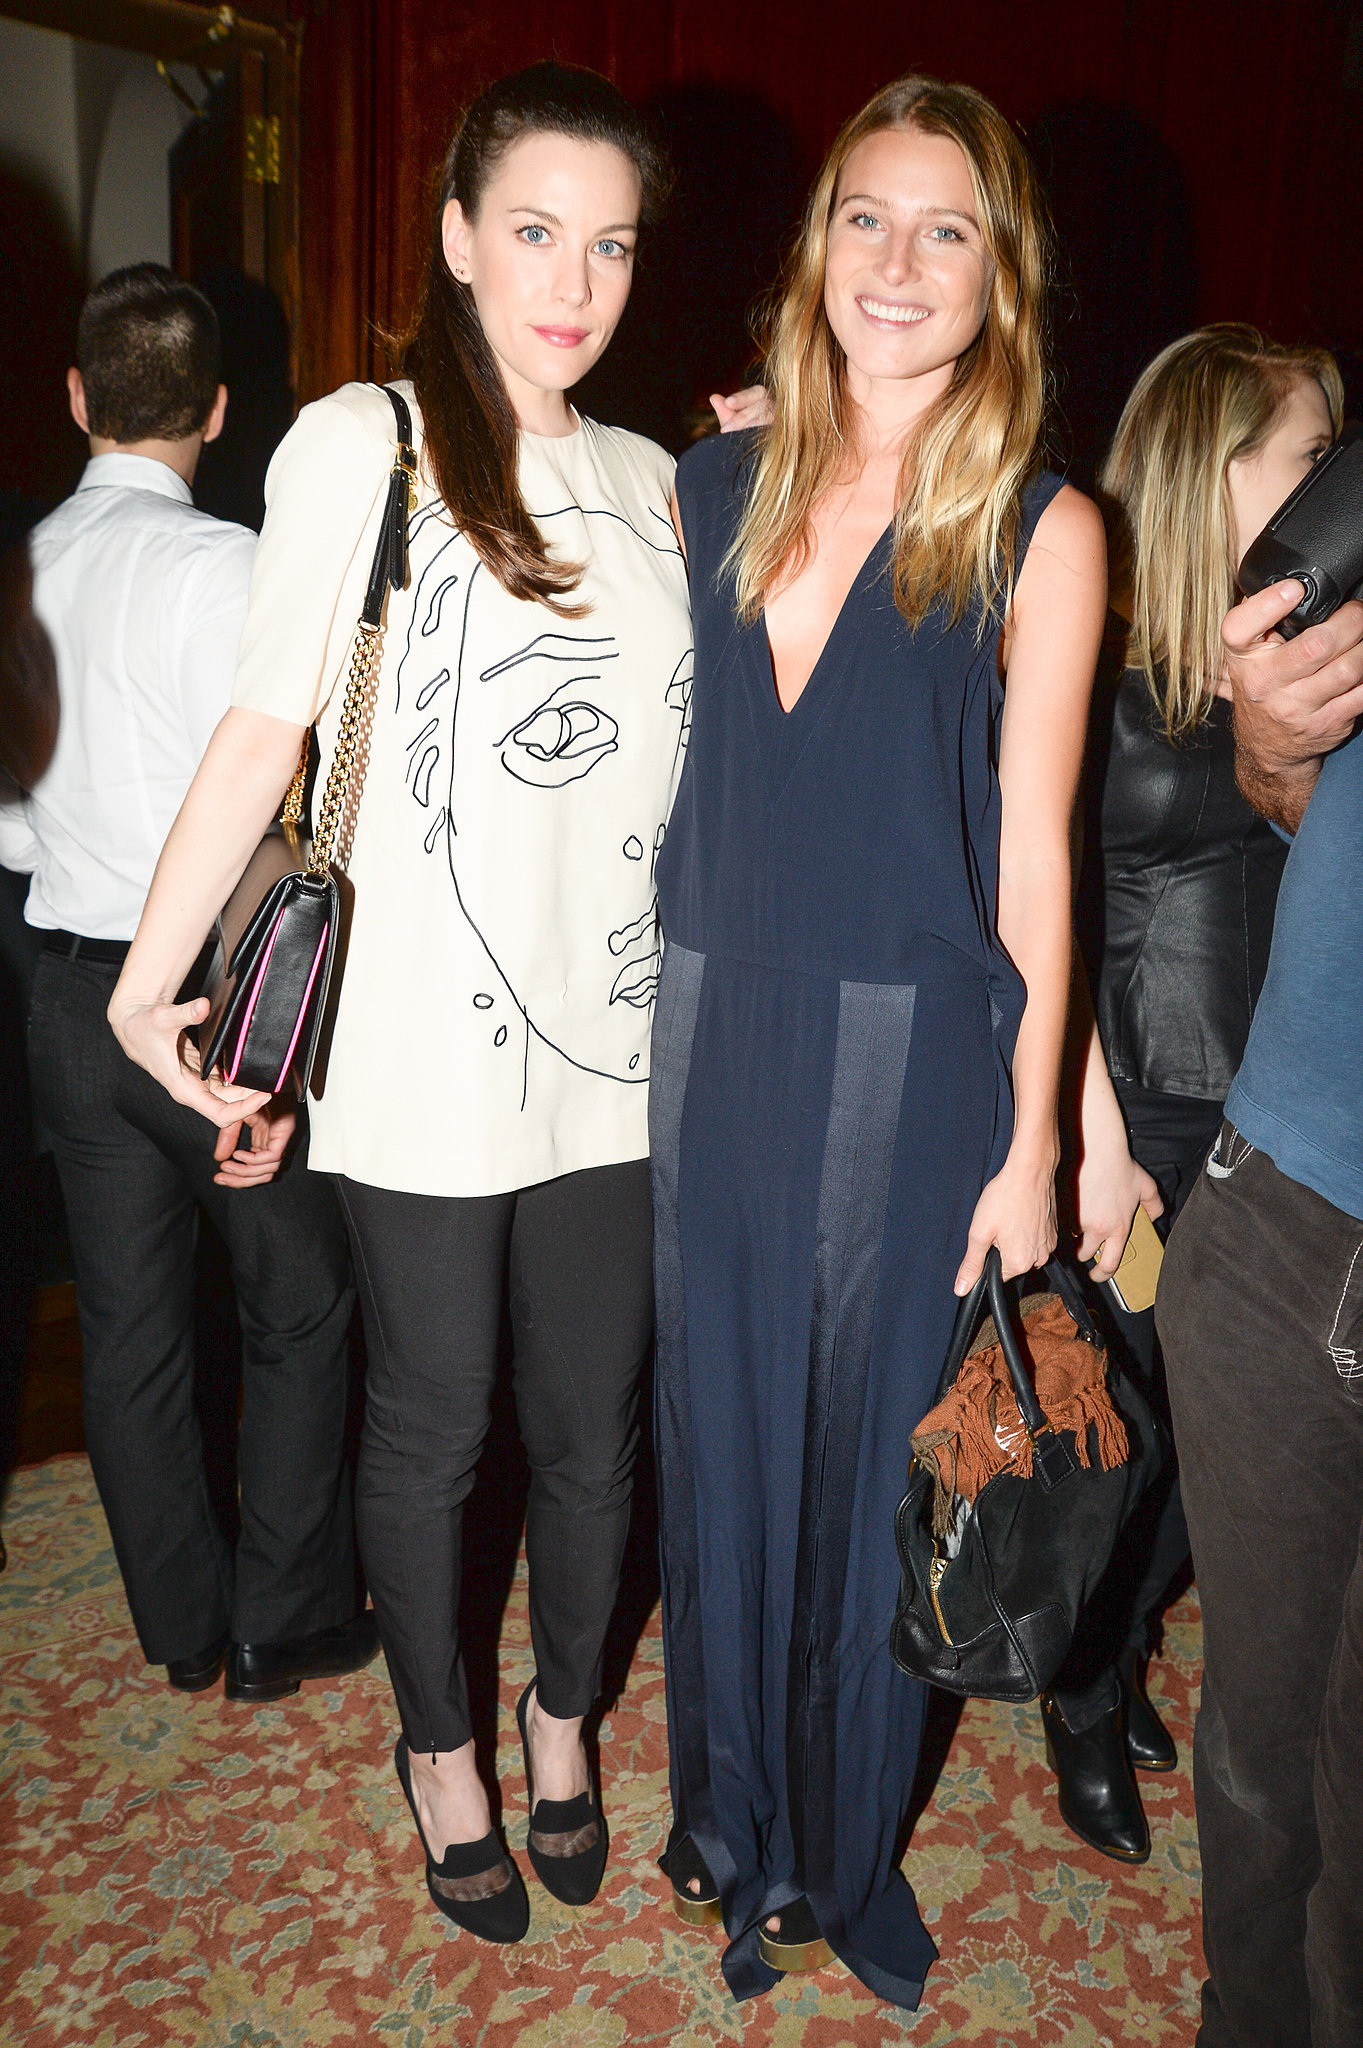 Liv Tyler and Dree Hemingway at the Stella McCartney Pre-Fall 2014 presentation.